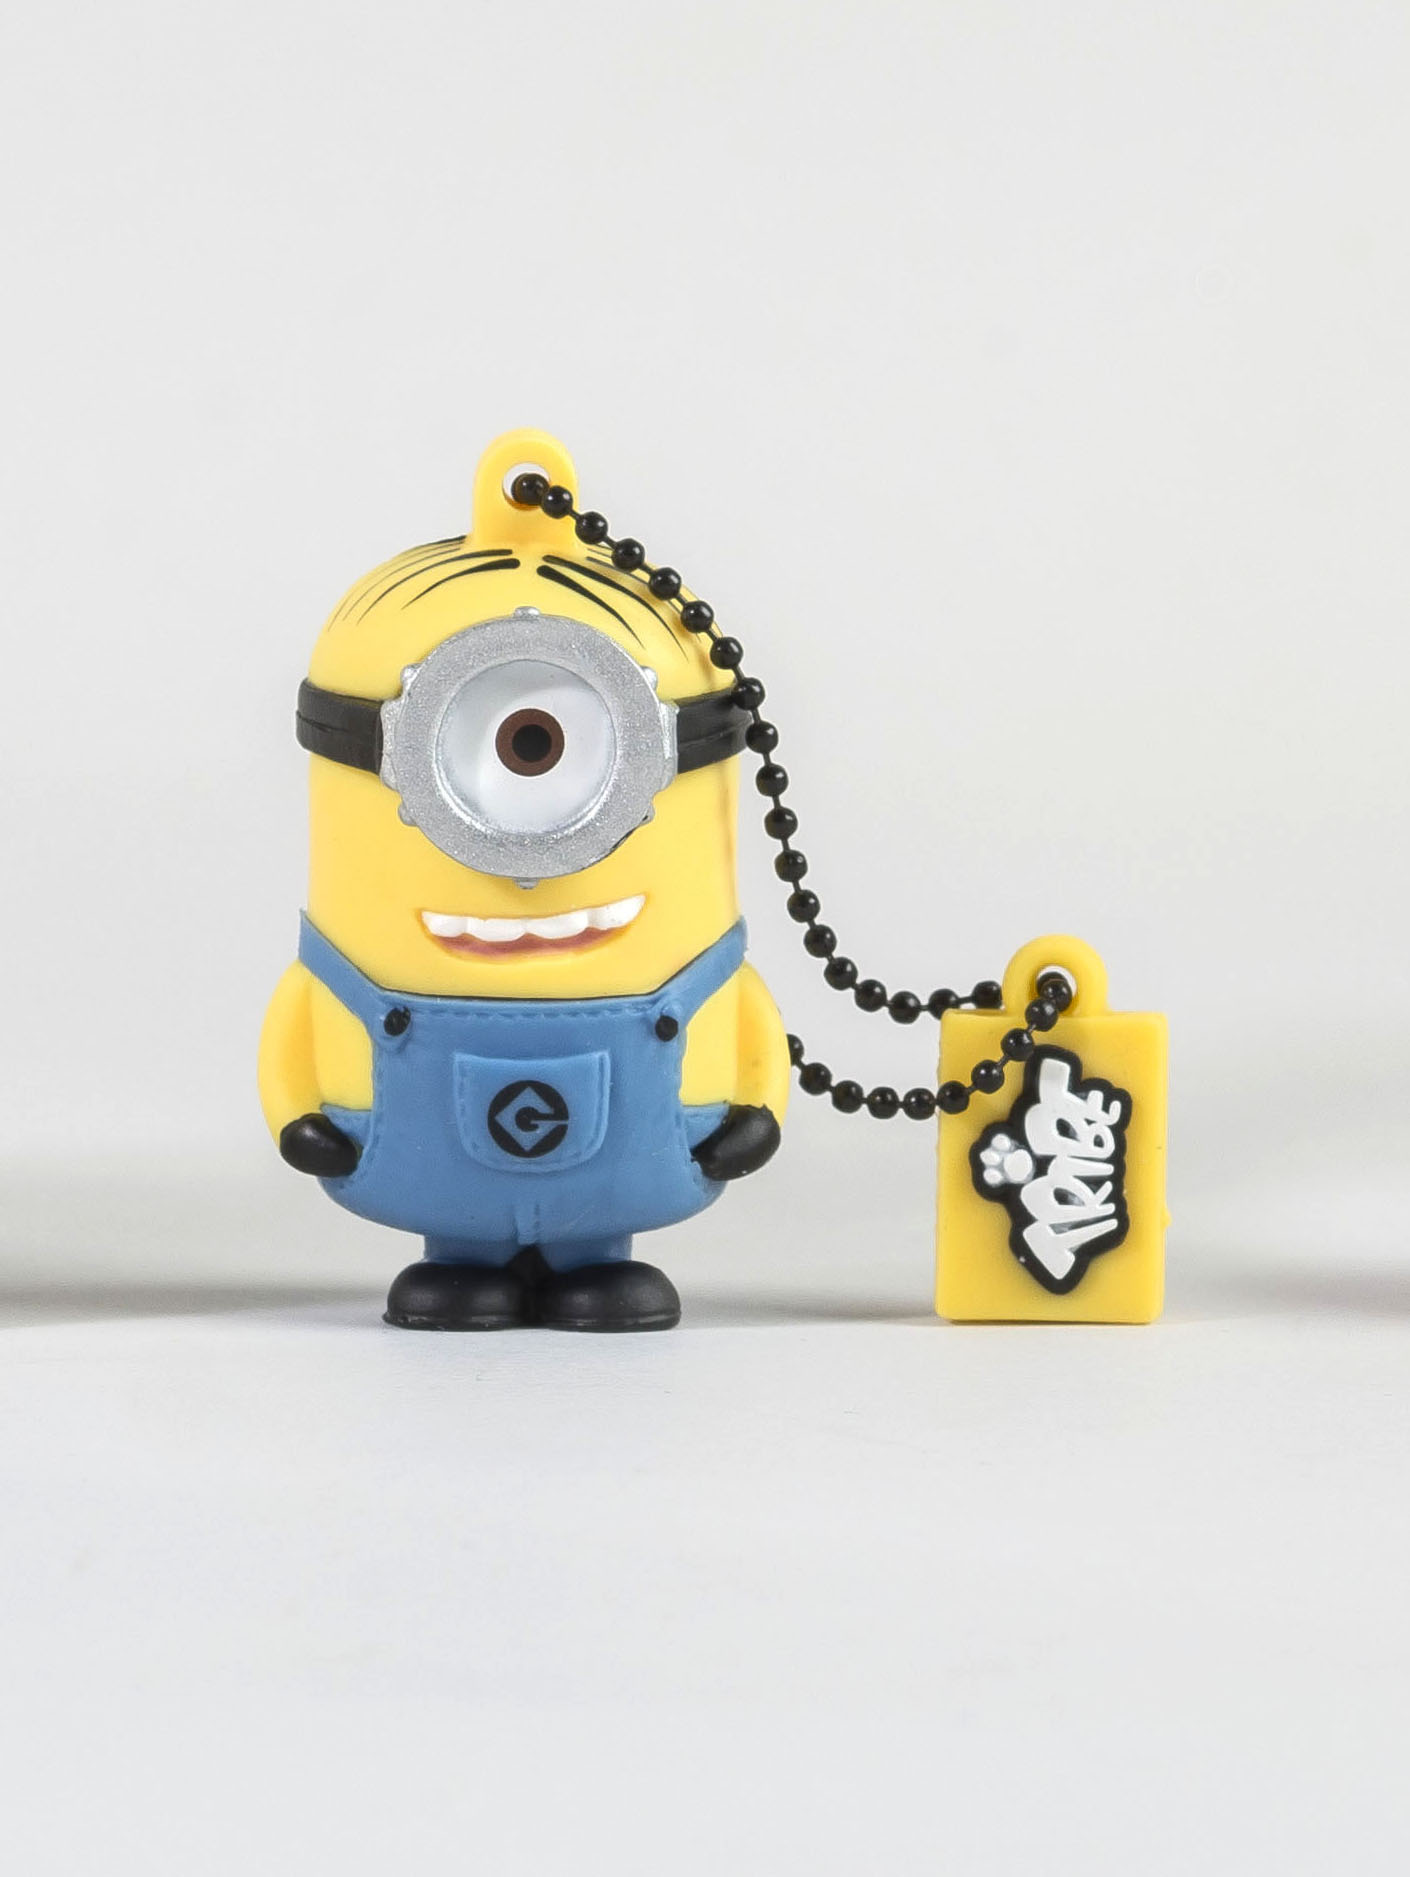 Moi moche et mechant cle usb minion stuart 8 gb - Mechant minion ...